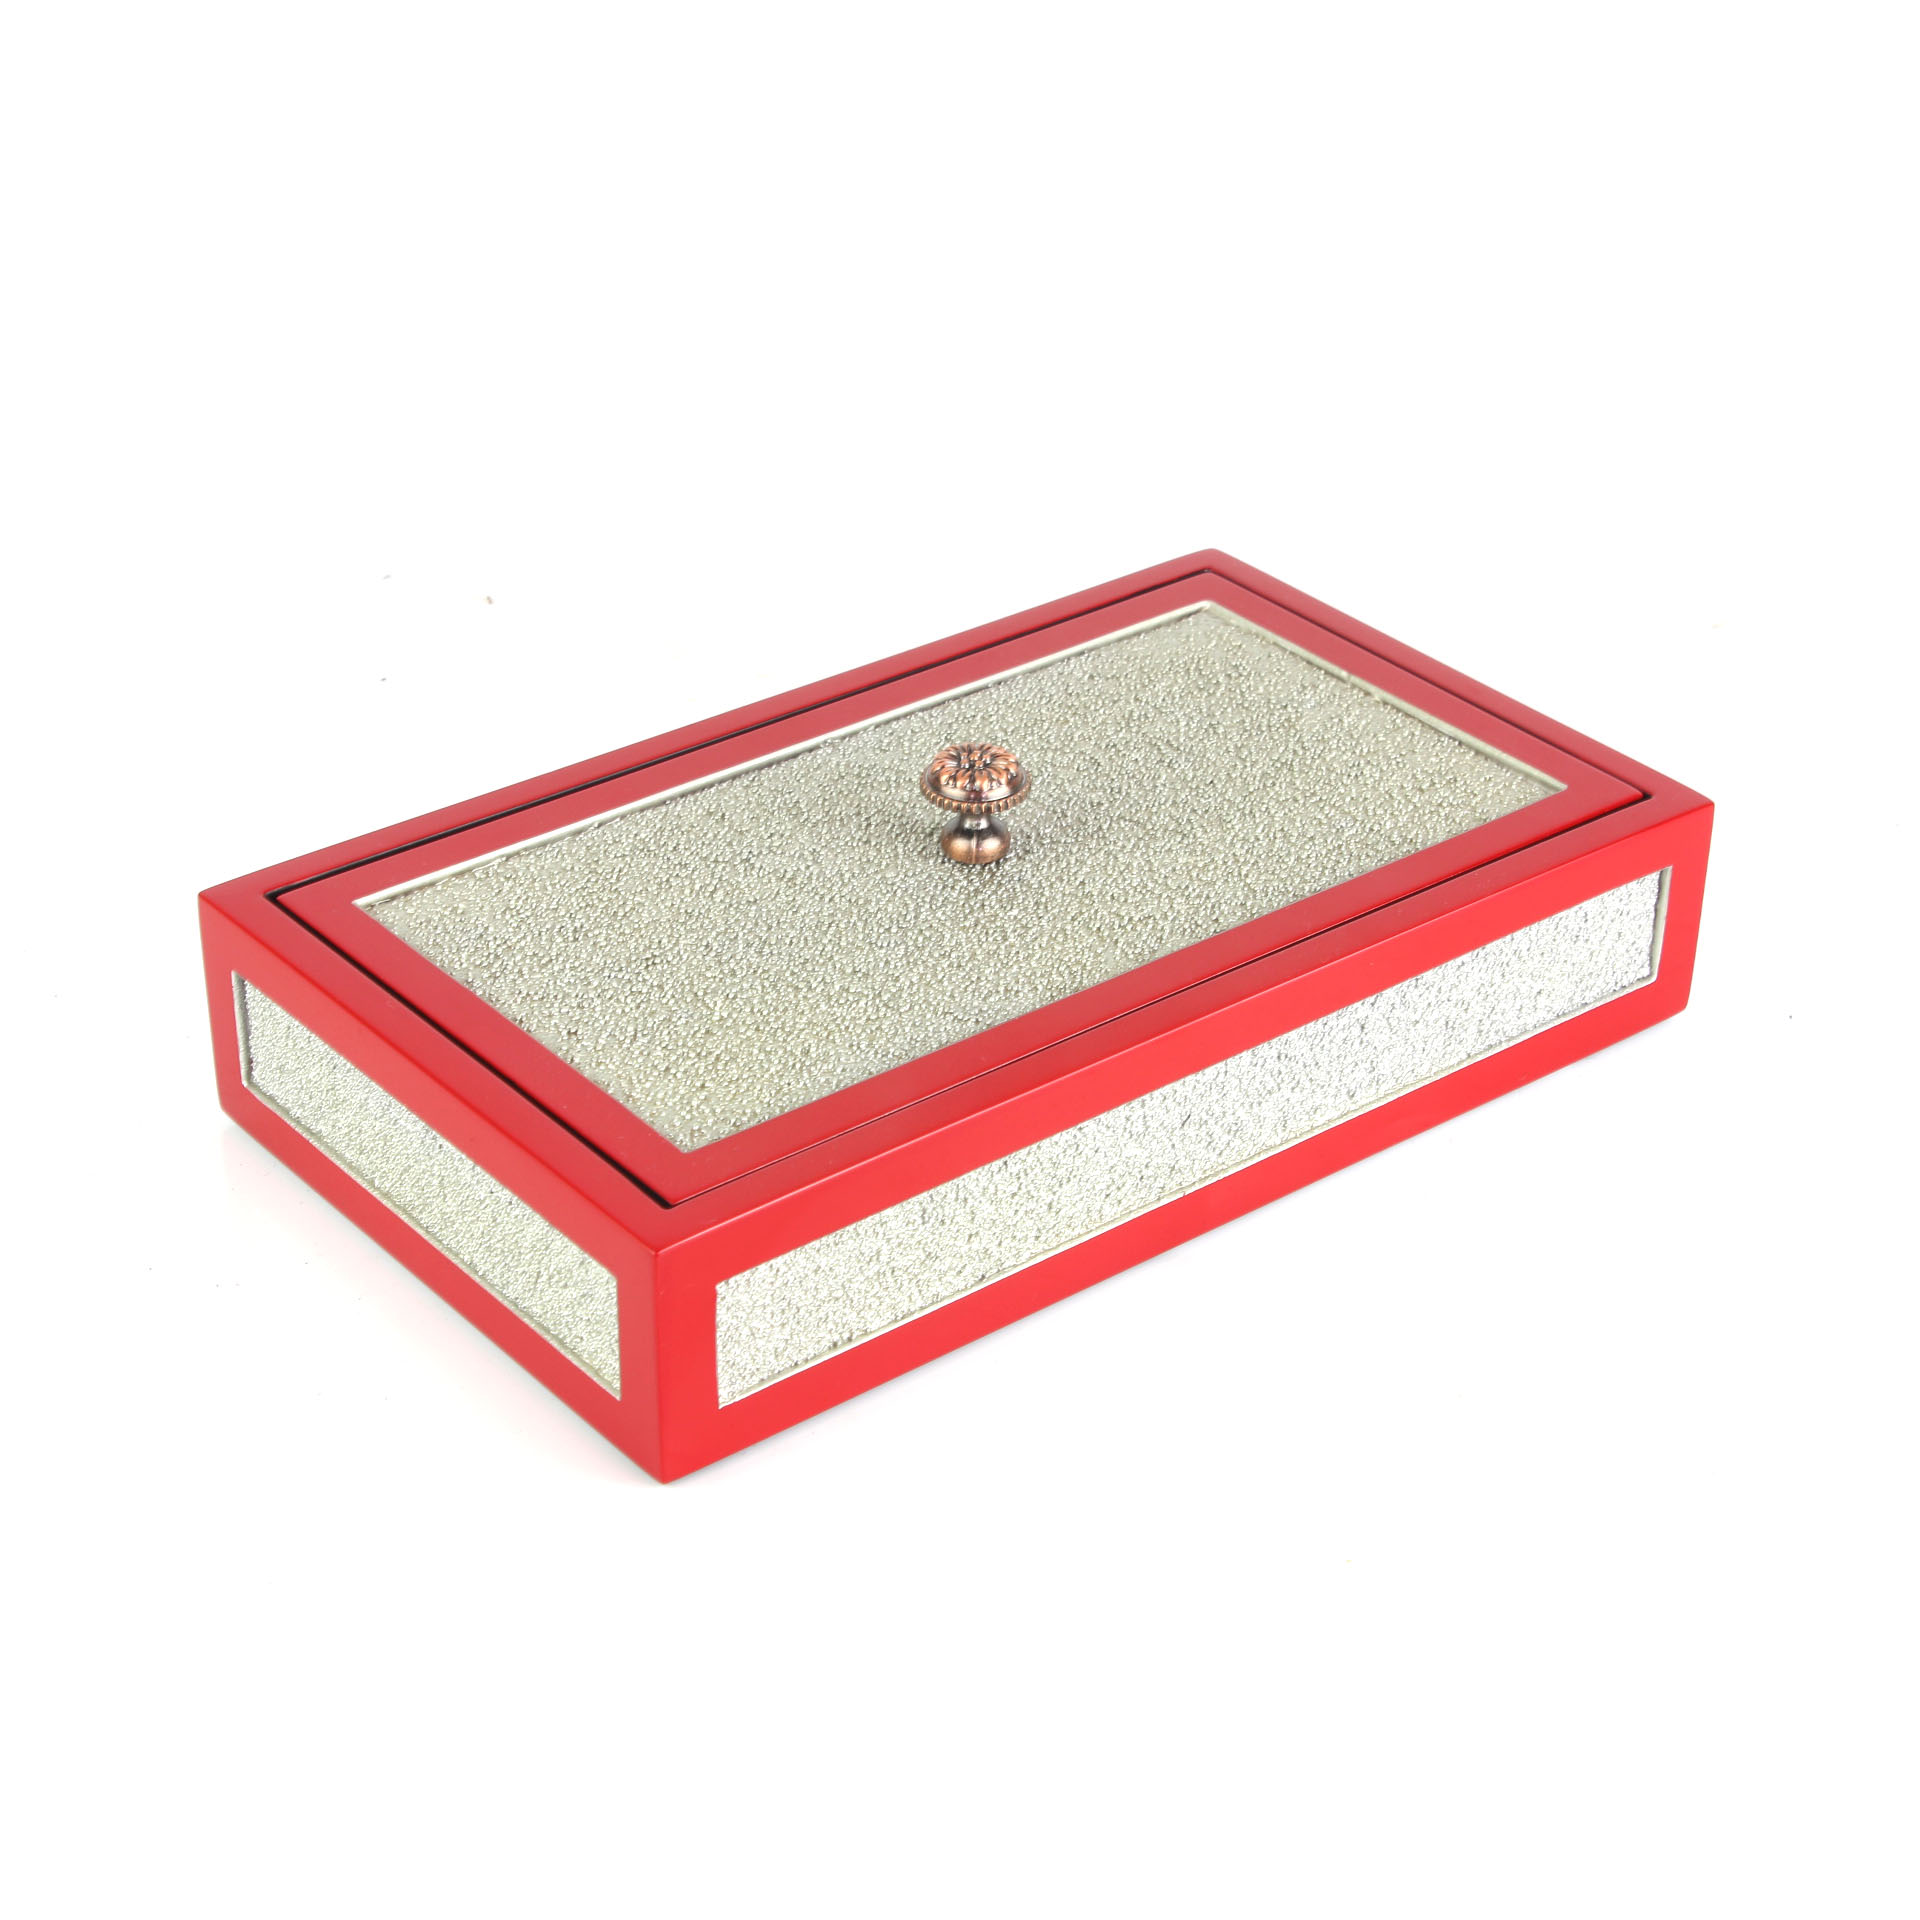 Lacquer Box with Brass Handle